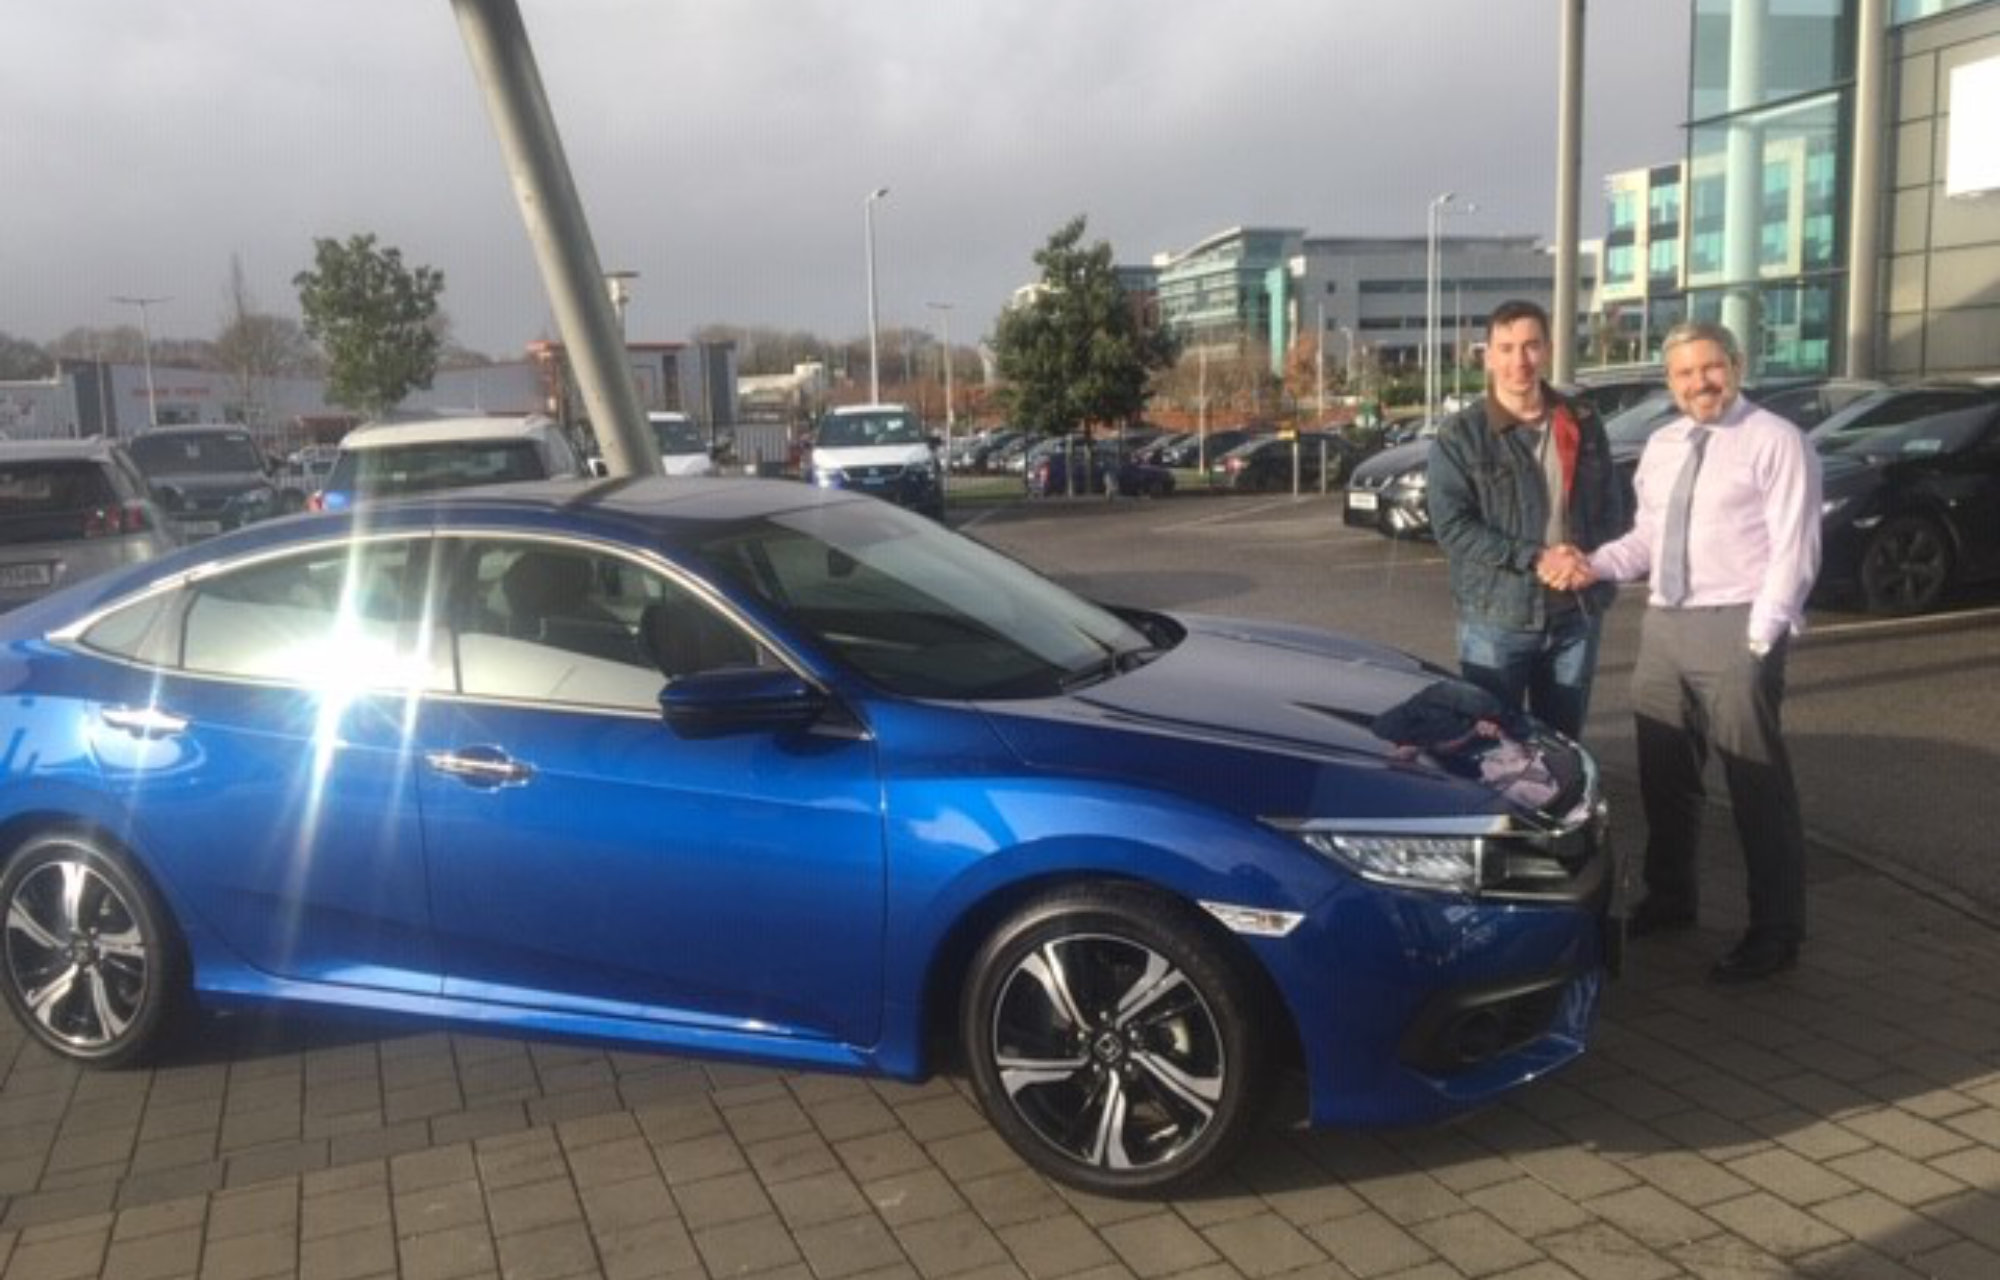 Brendan Keniry collecting his Civic Sedan